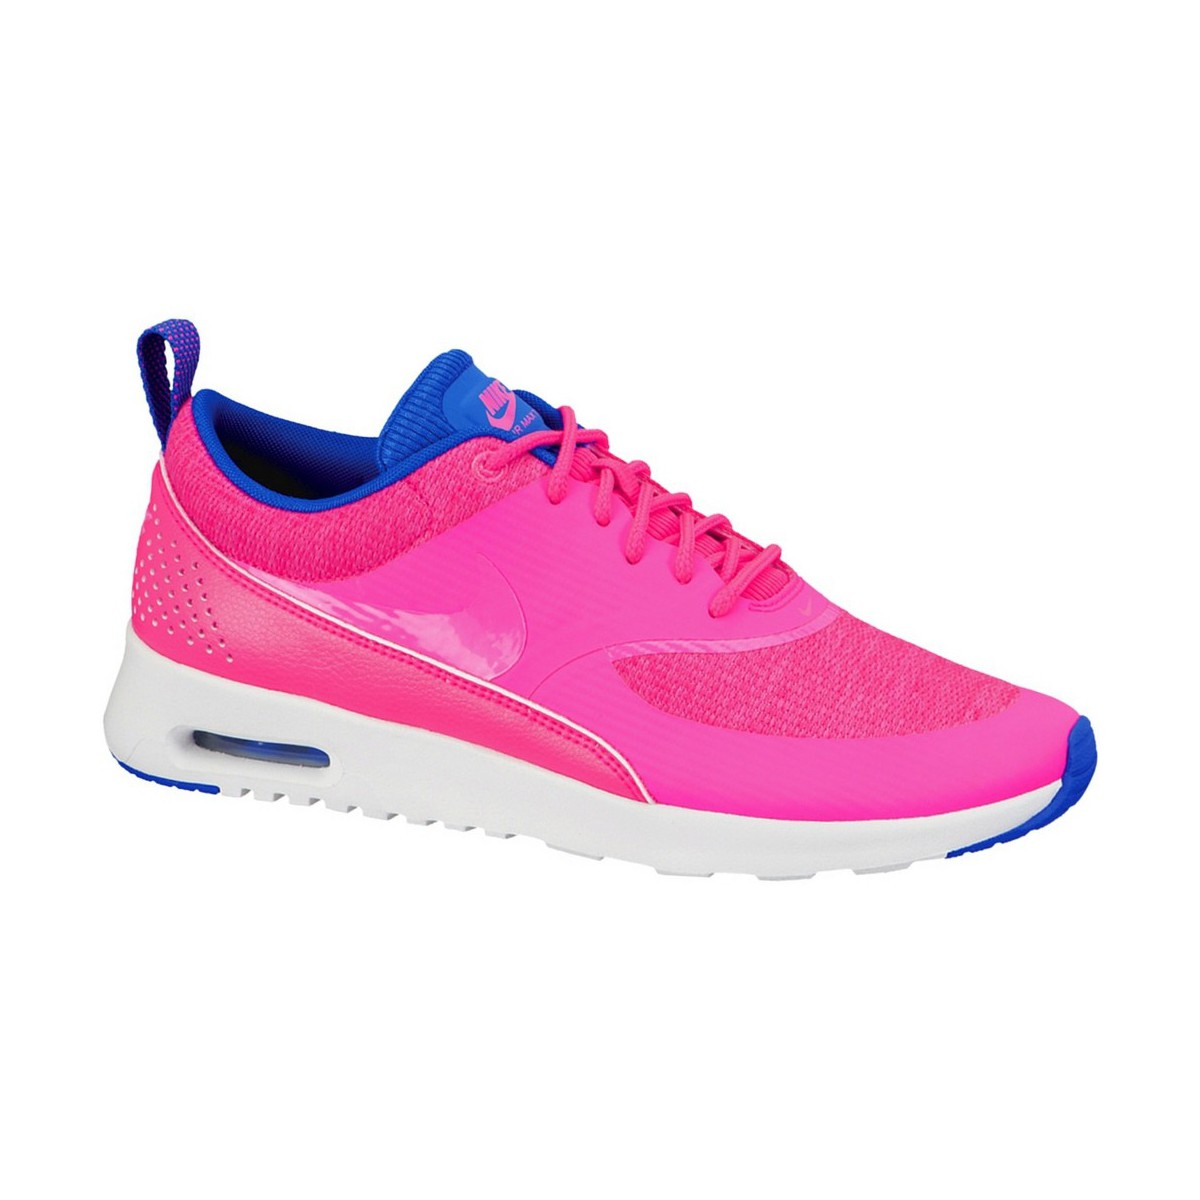 Sneakers Nike  Air Max Thea Prm Wmns  616723-601